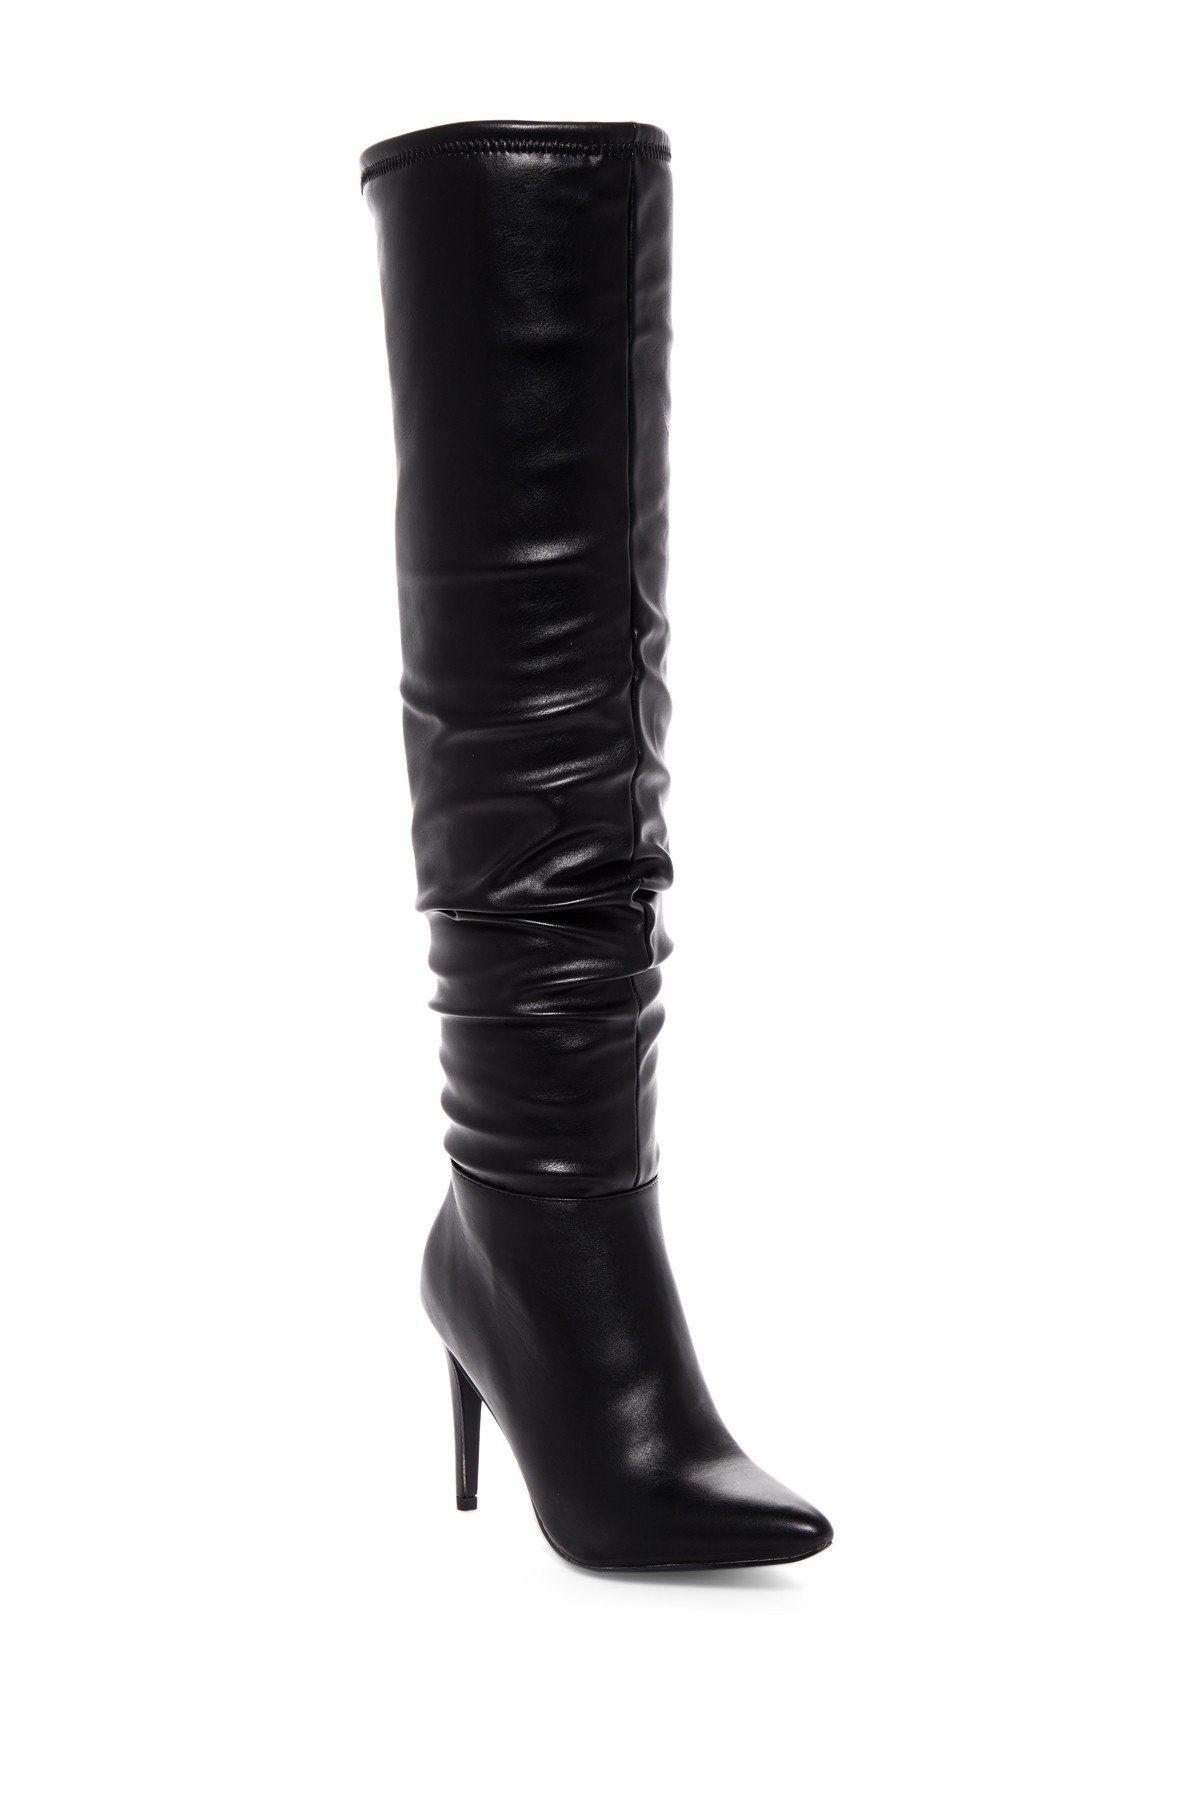 b156a6194f4 Shop for Jessica Simpson Loring Patent Stretch Over the Knee Boots at  Dillards.com. Visit Dillards.com to find clothing